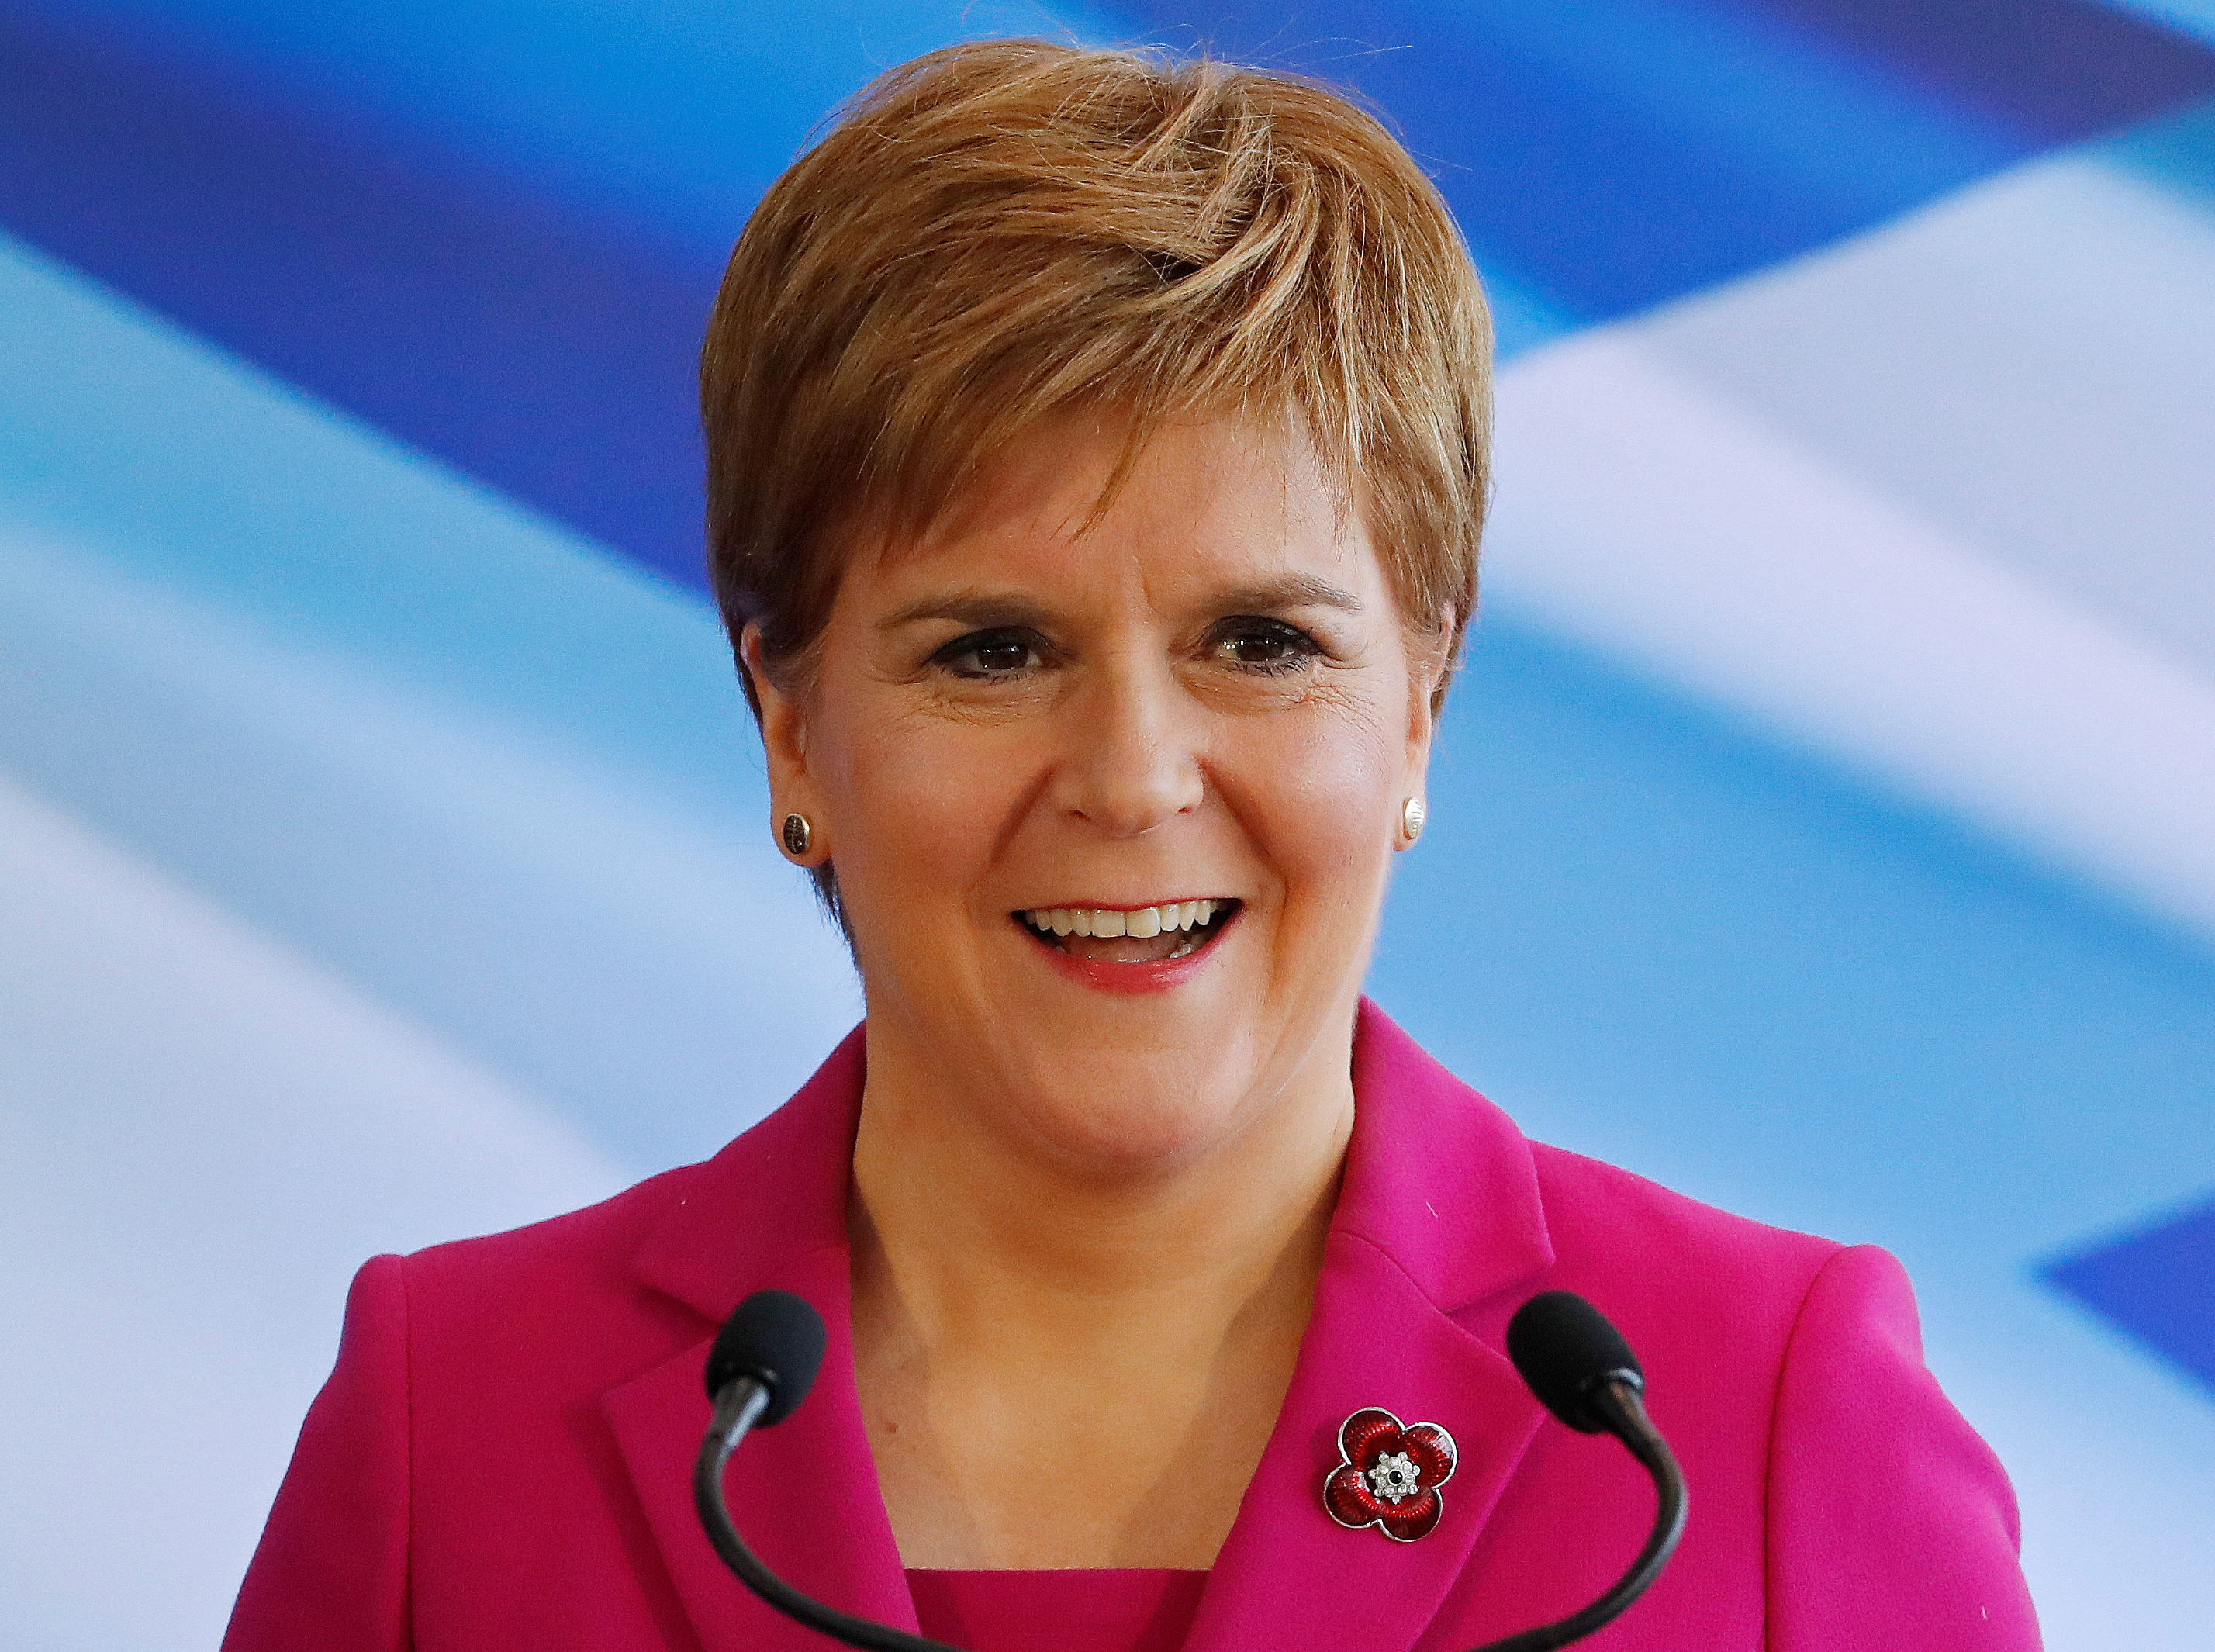 Nicola Sturgeon tops reader poll